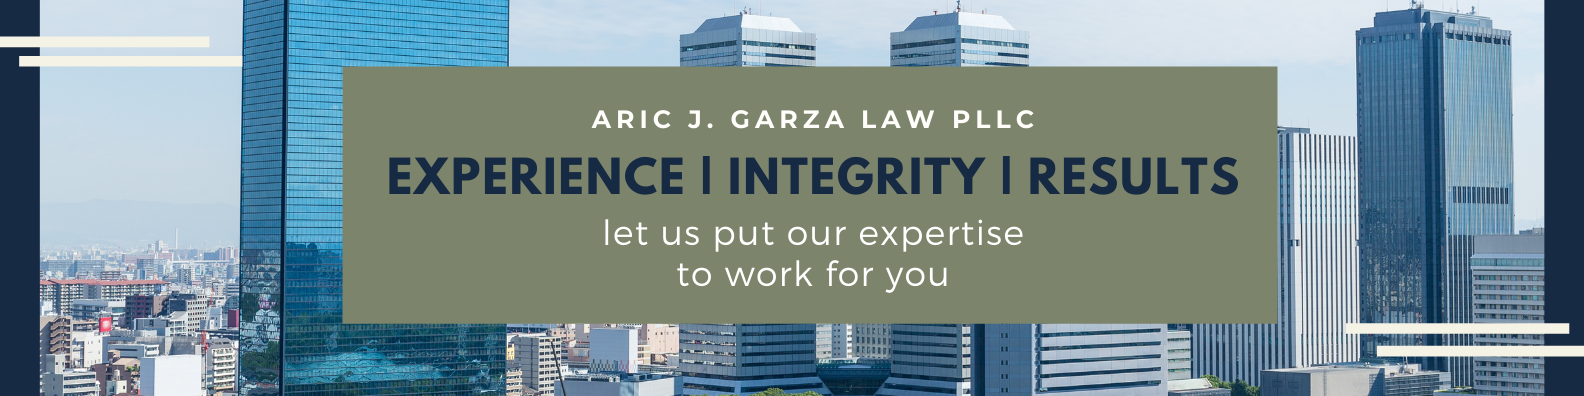 Aric J. Garza Law PLLC